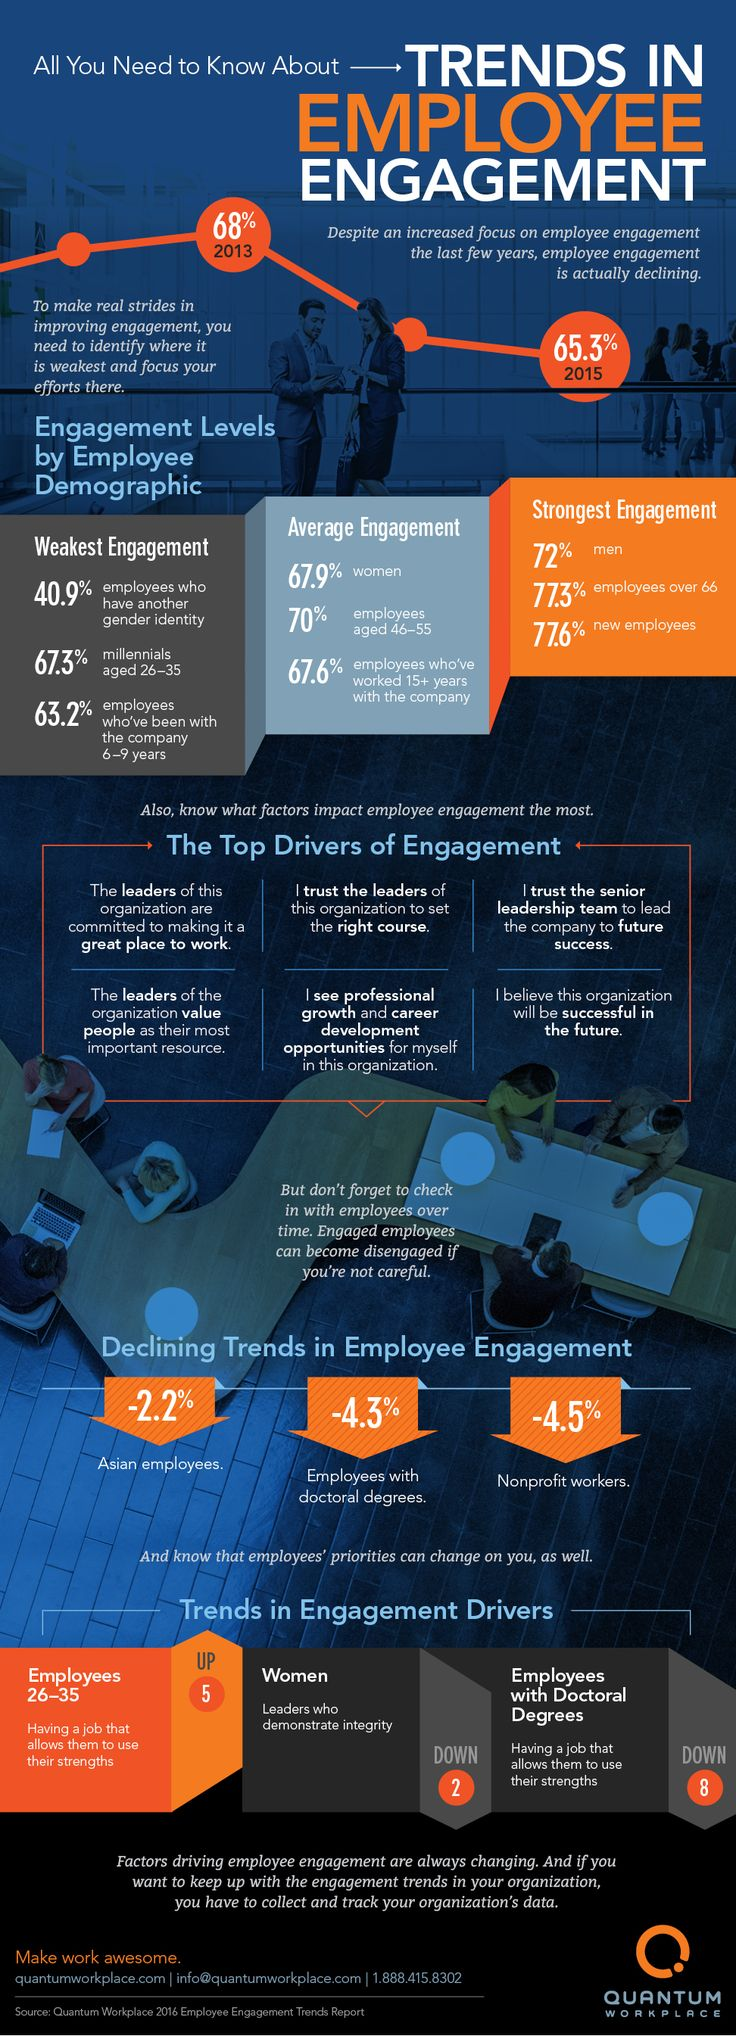 MetLife's Mexico Employee Benefit Trends Study 2018